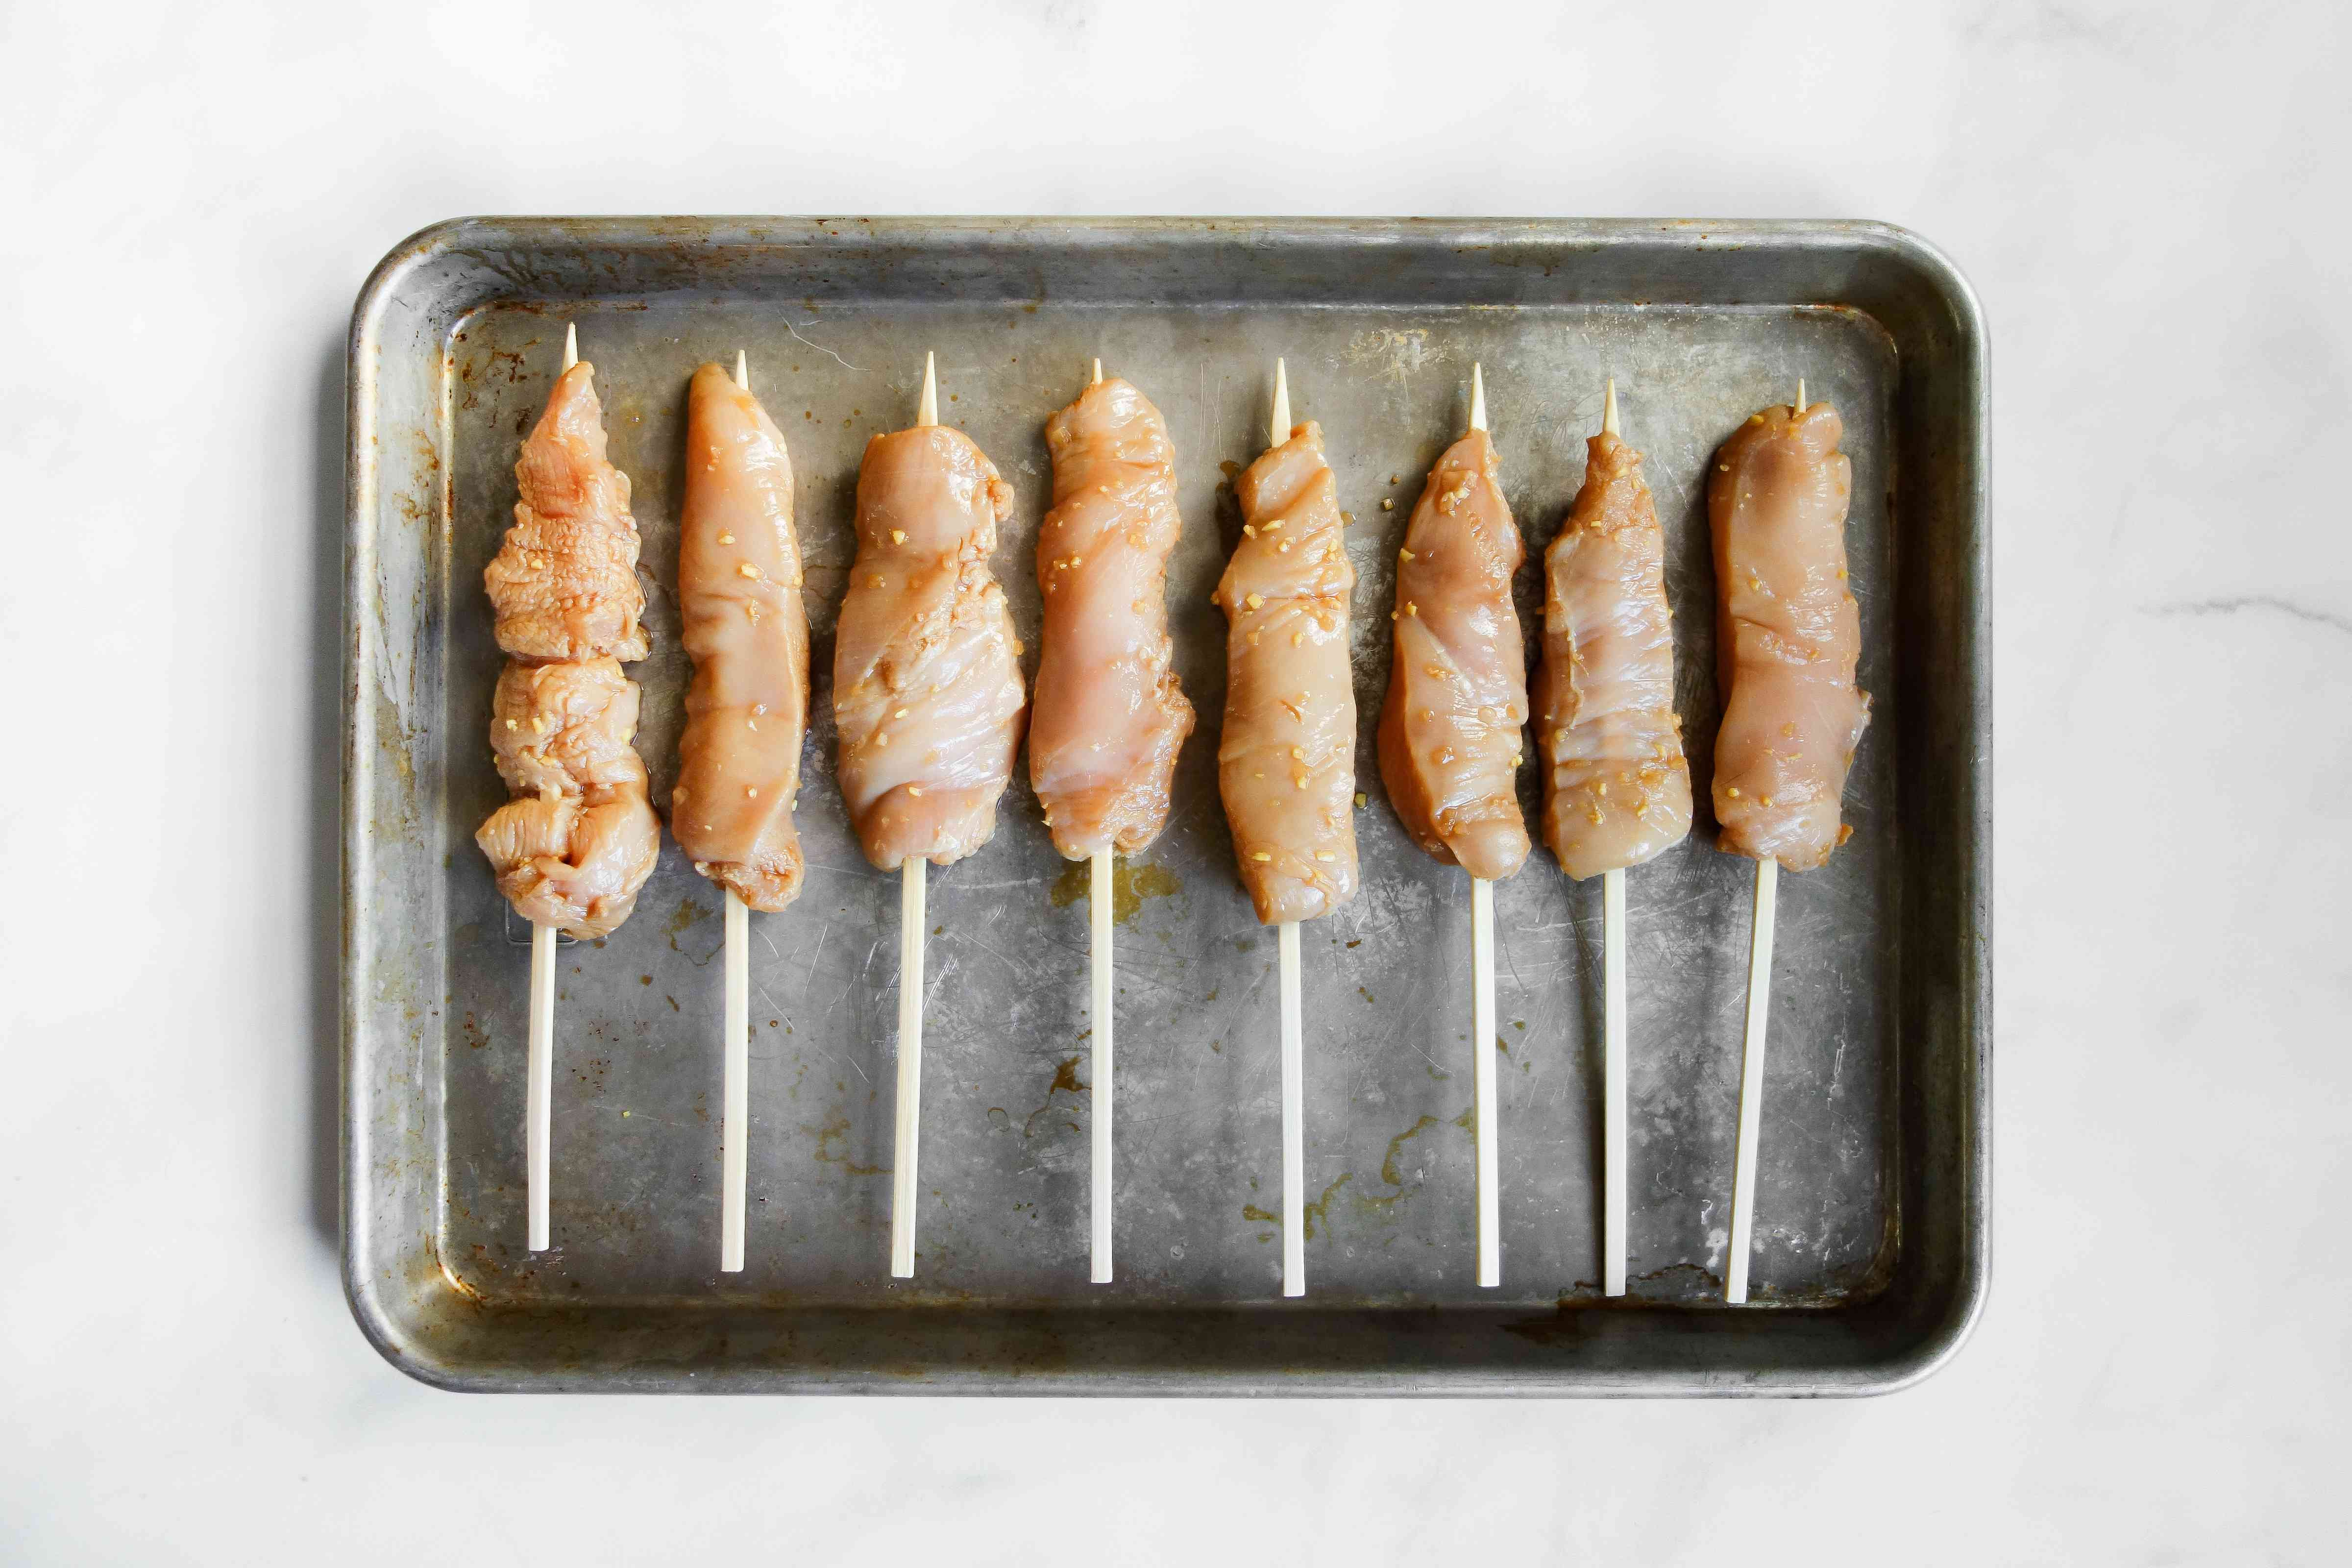 Thread chicken strips onto the pre-soaked skewers on a baking sheet